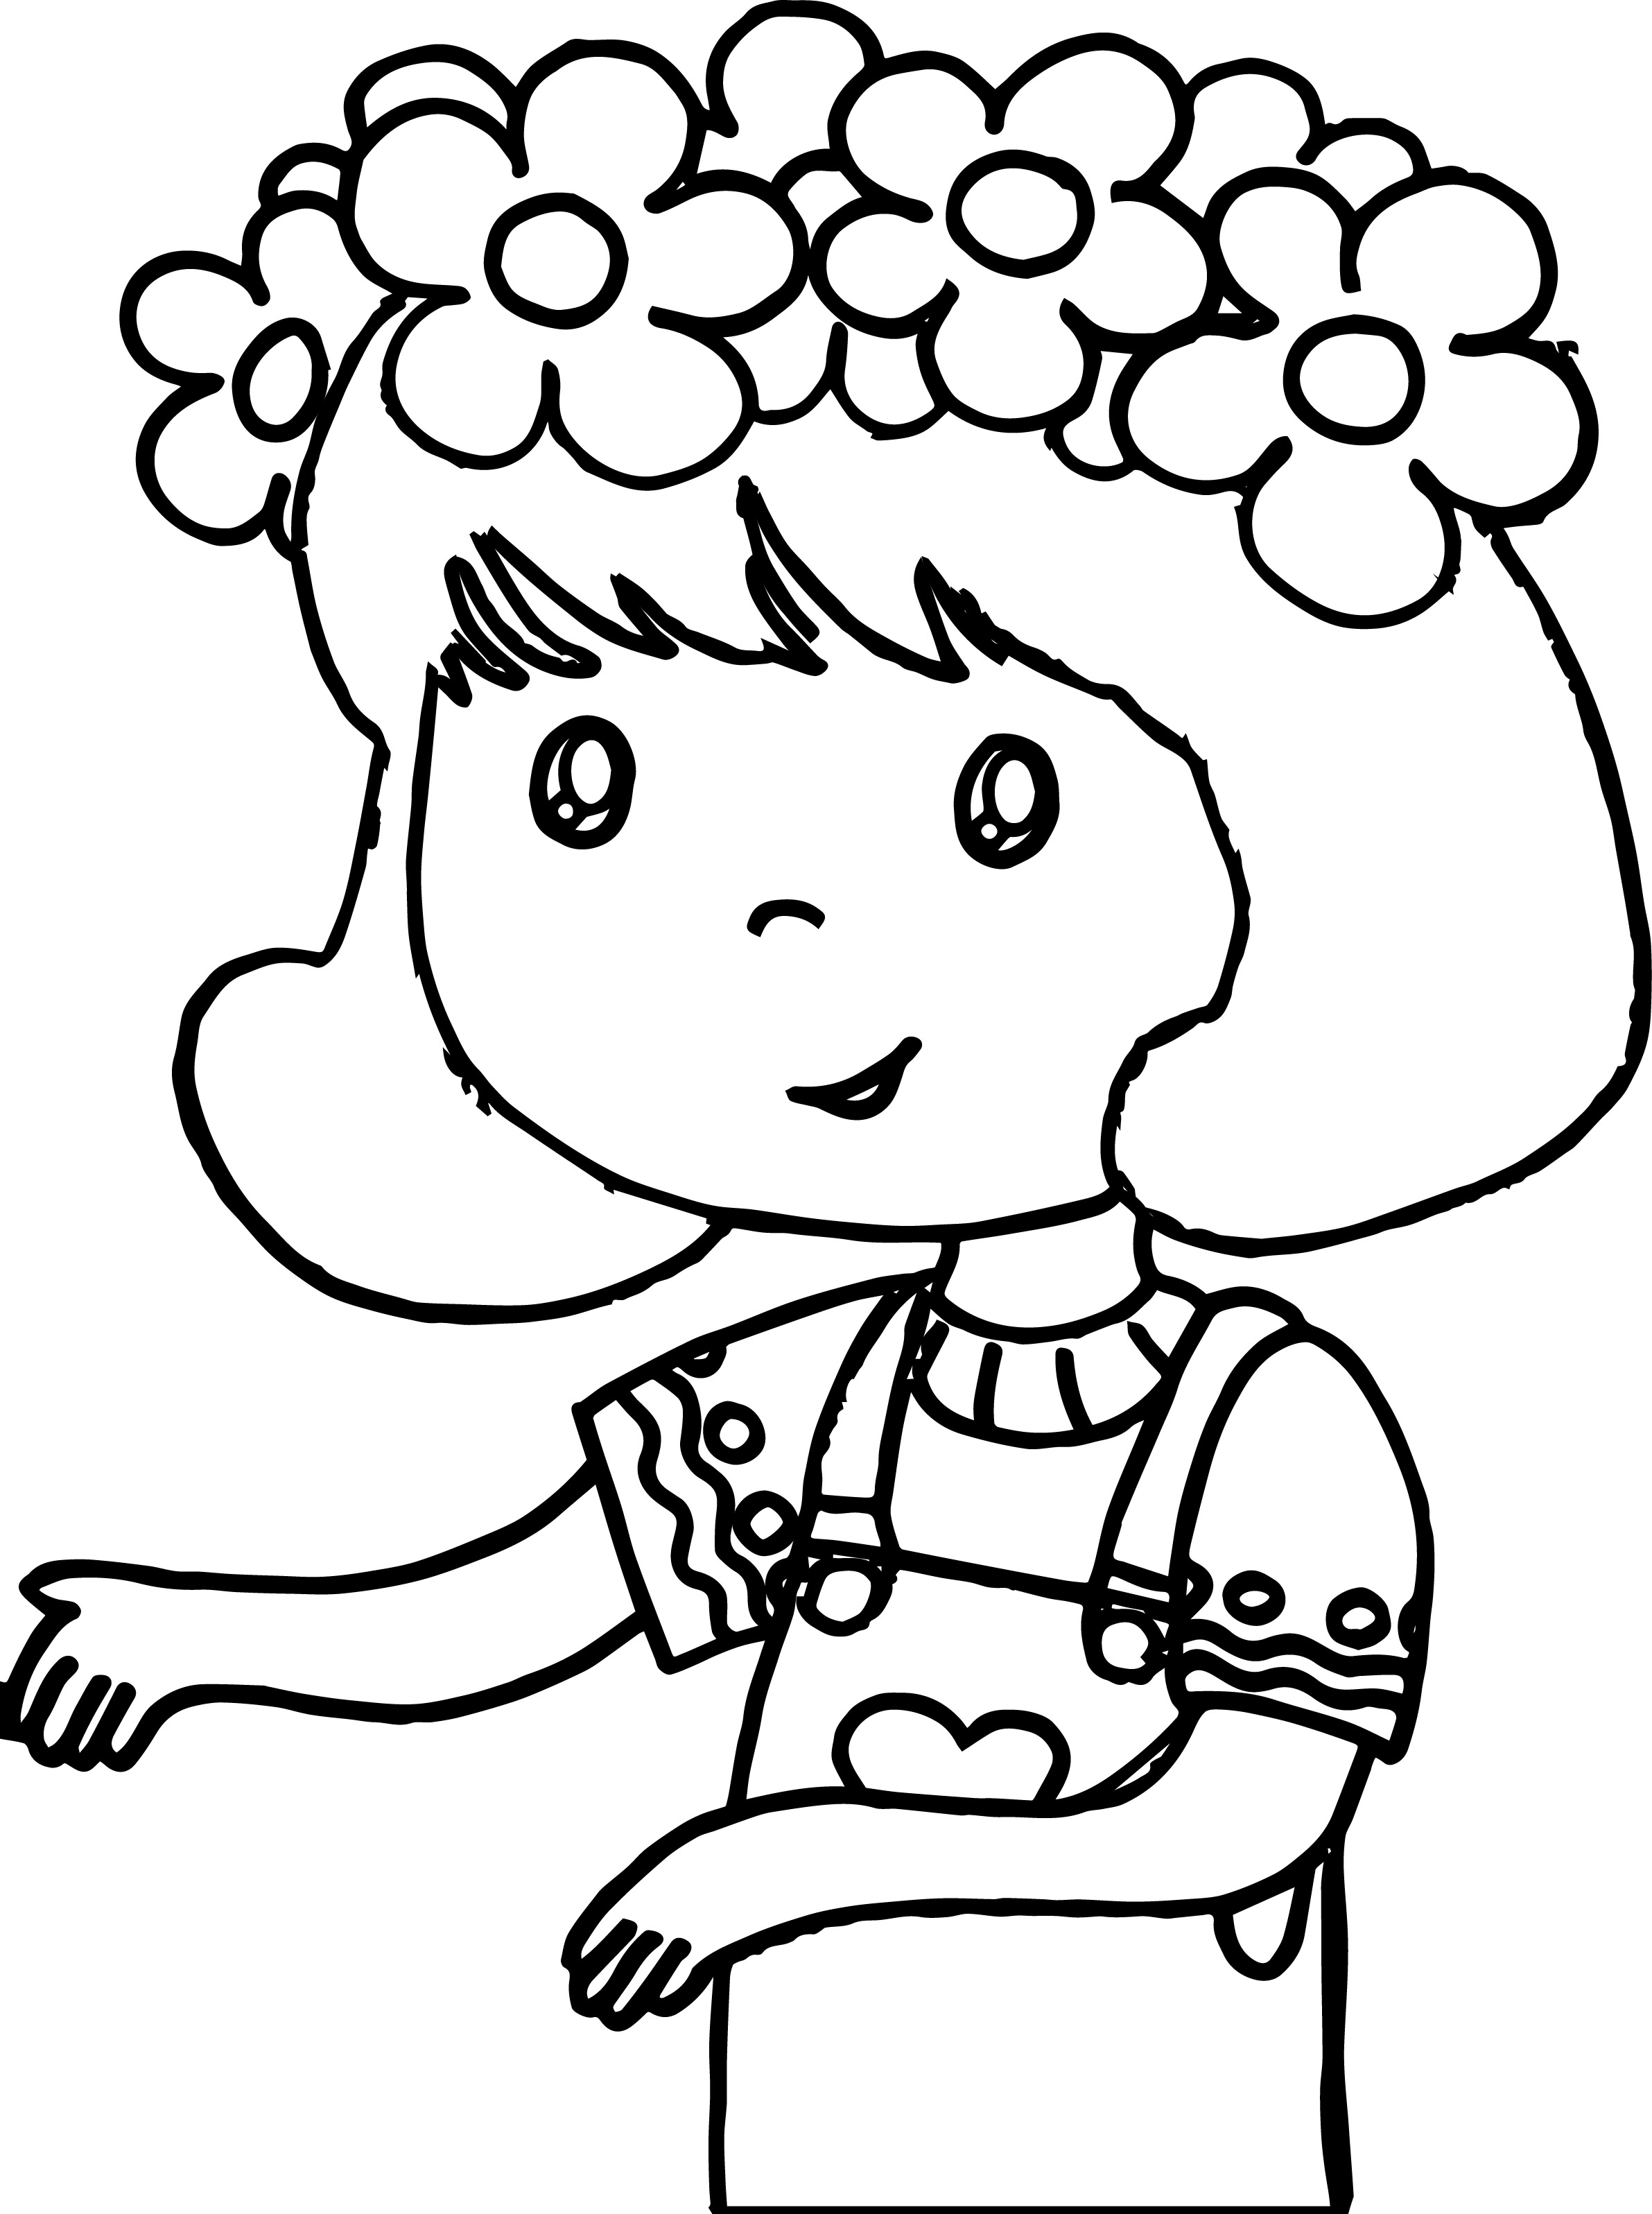 Amelia Earhart Stamp Coloring Coloring Pages